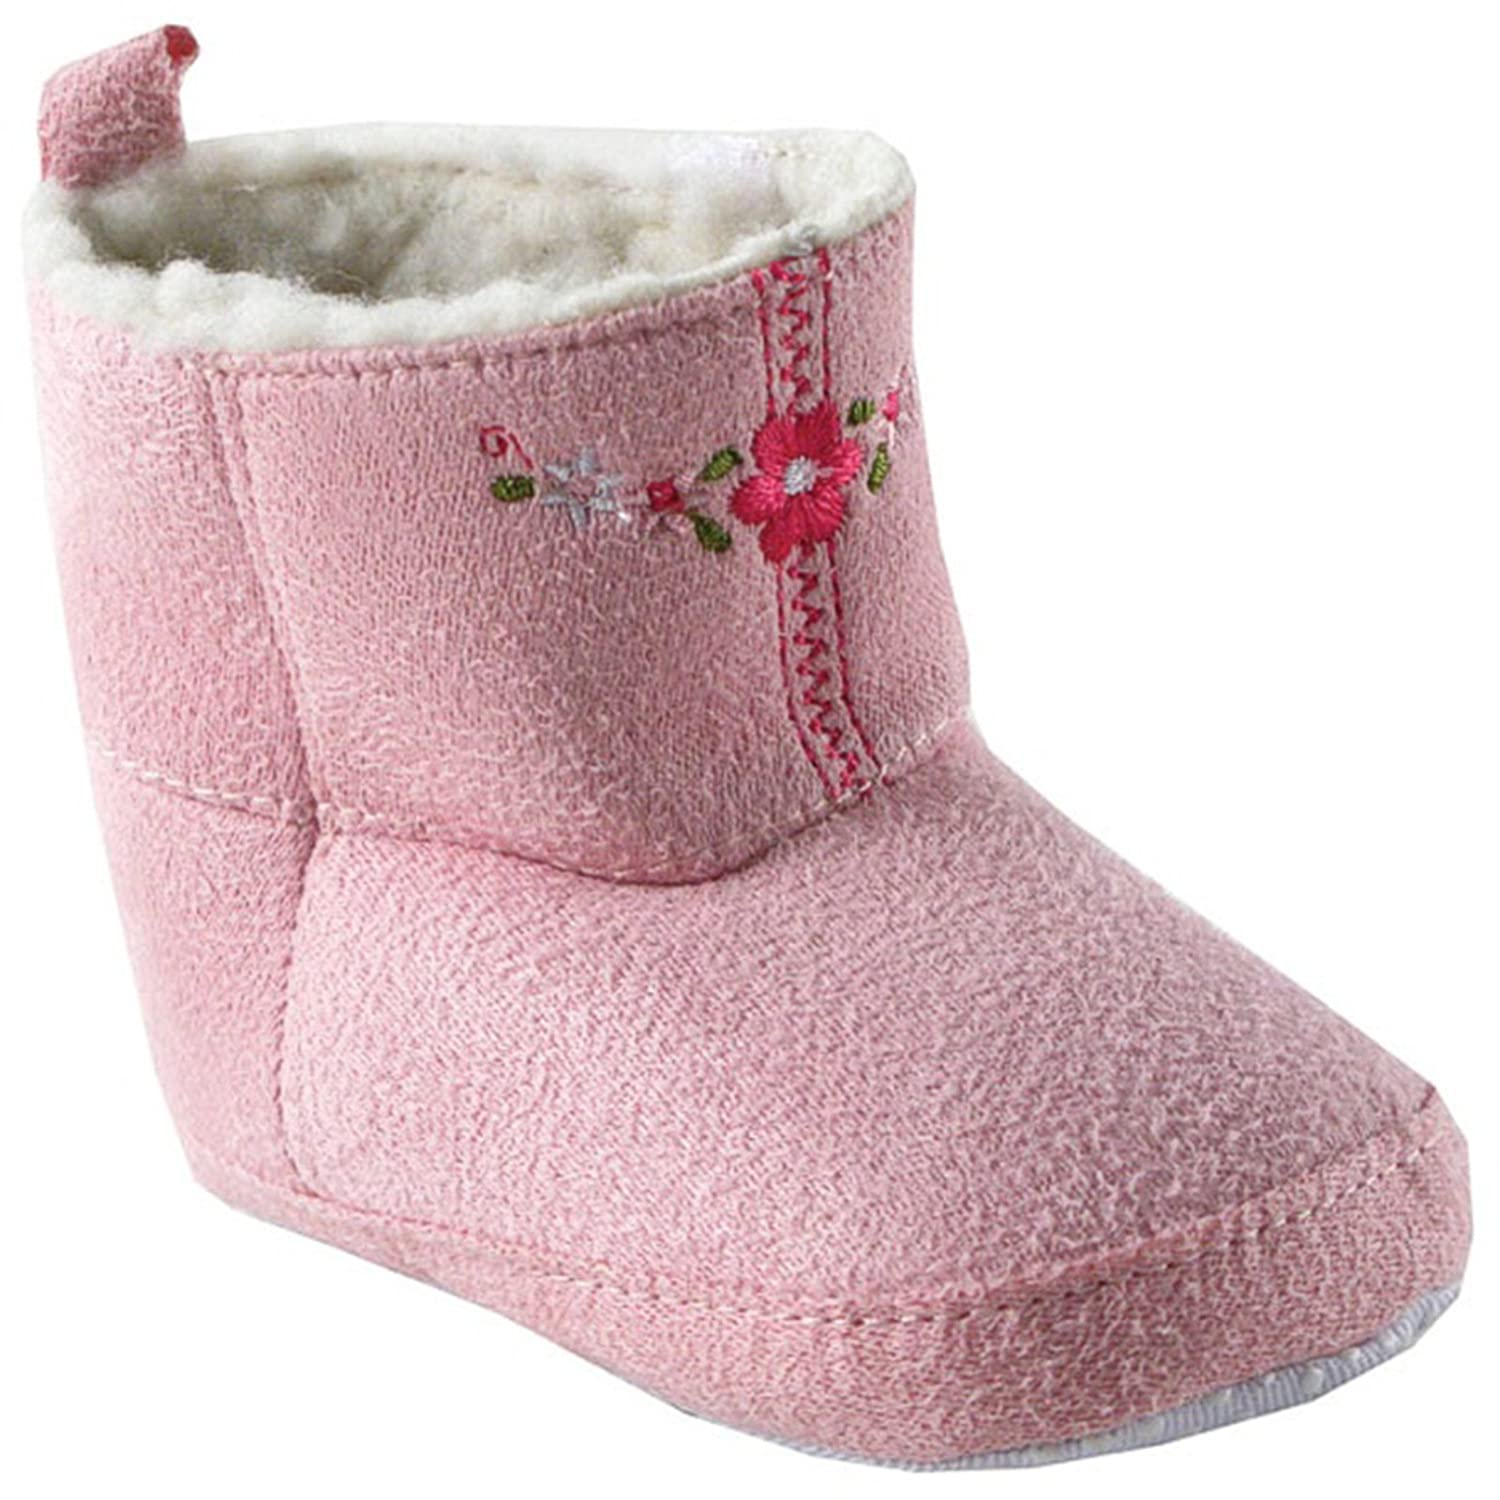 b70266d9574 Luvable Friends Kids' Embroidered Suede Baby Boot Crib Shoe